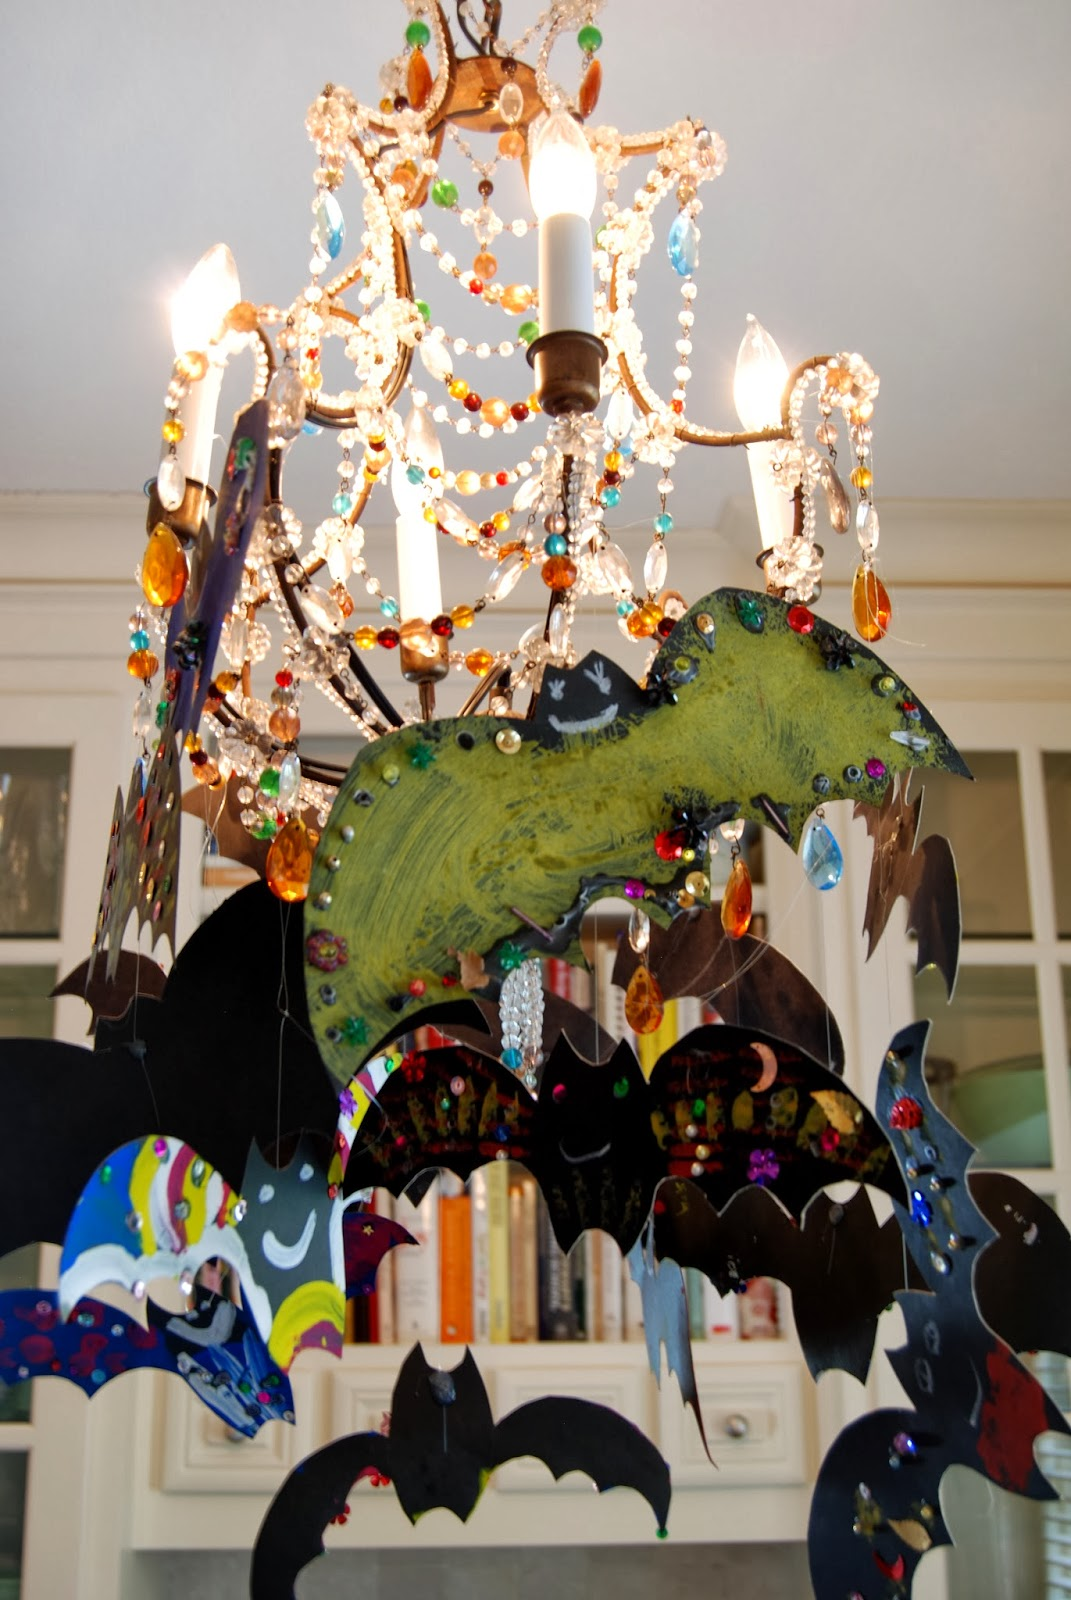 Handmade Bats in a Chandelier for Halloween; DIY